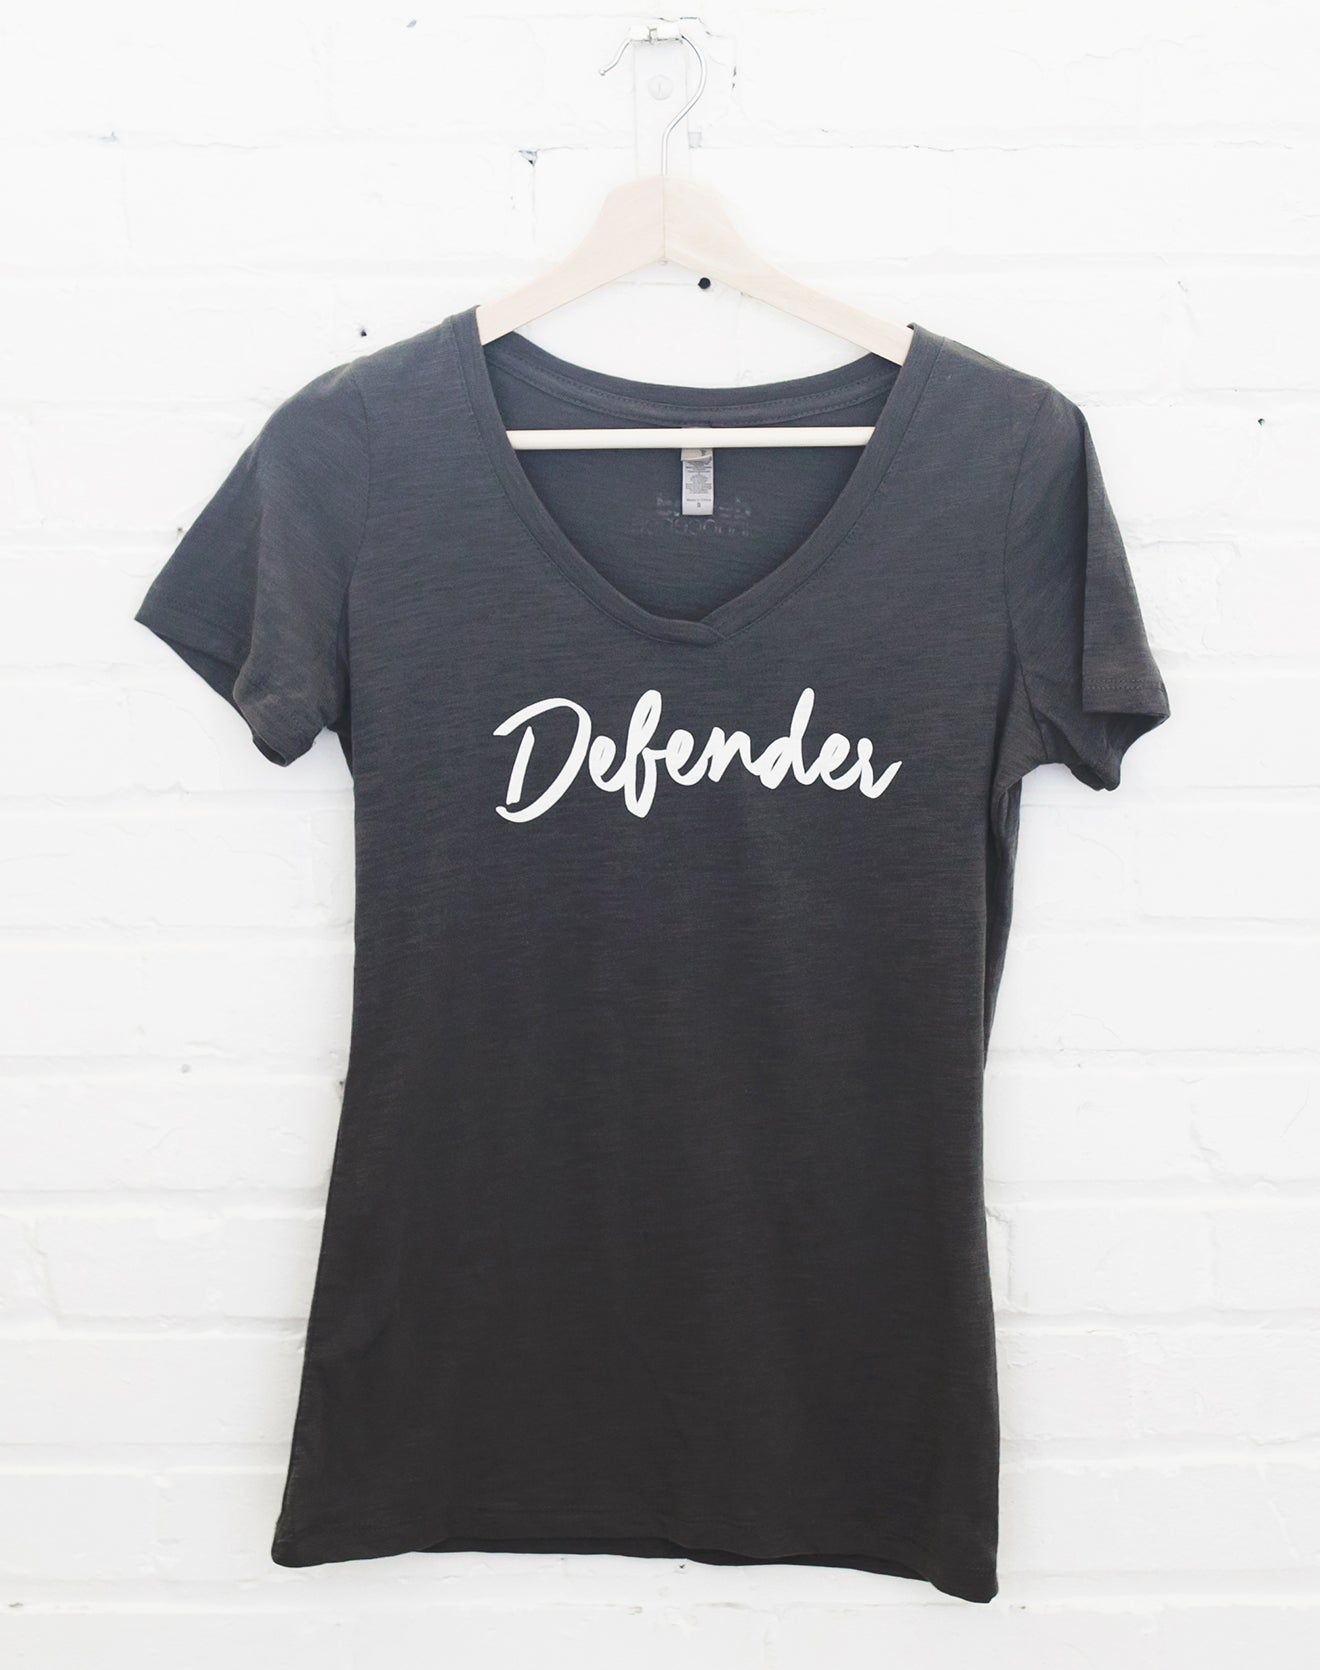 Women's Dark Gray V-Neck Defender Tee